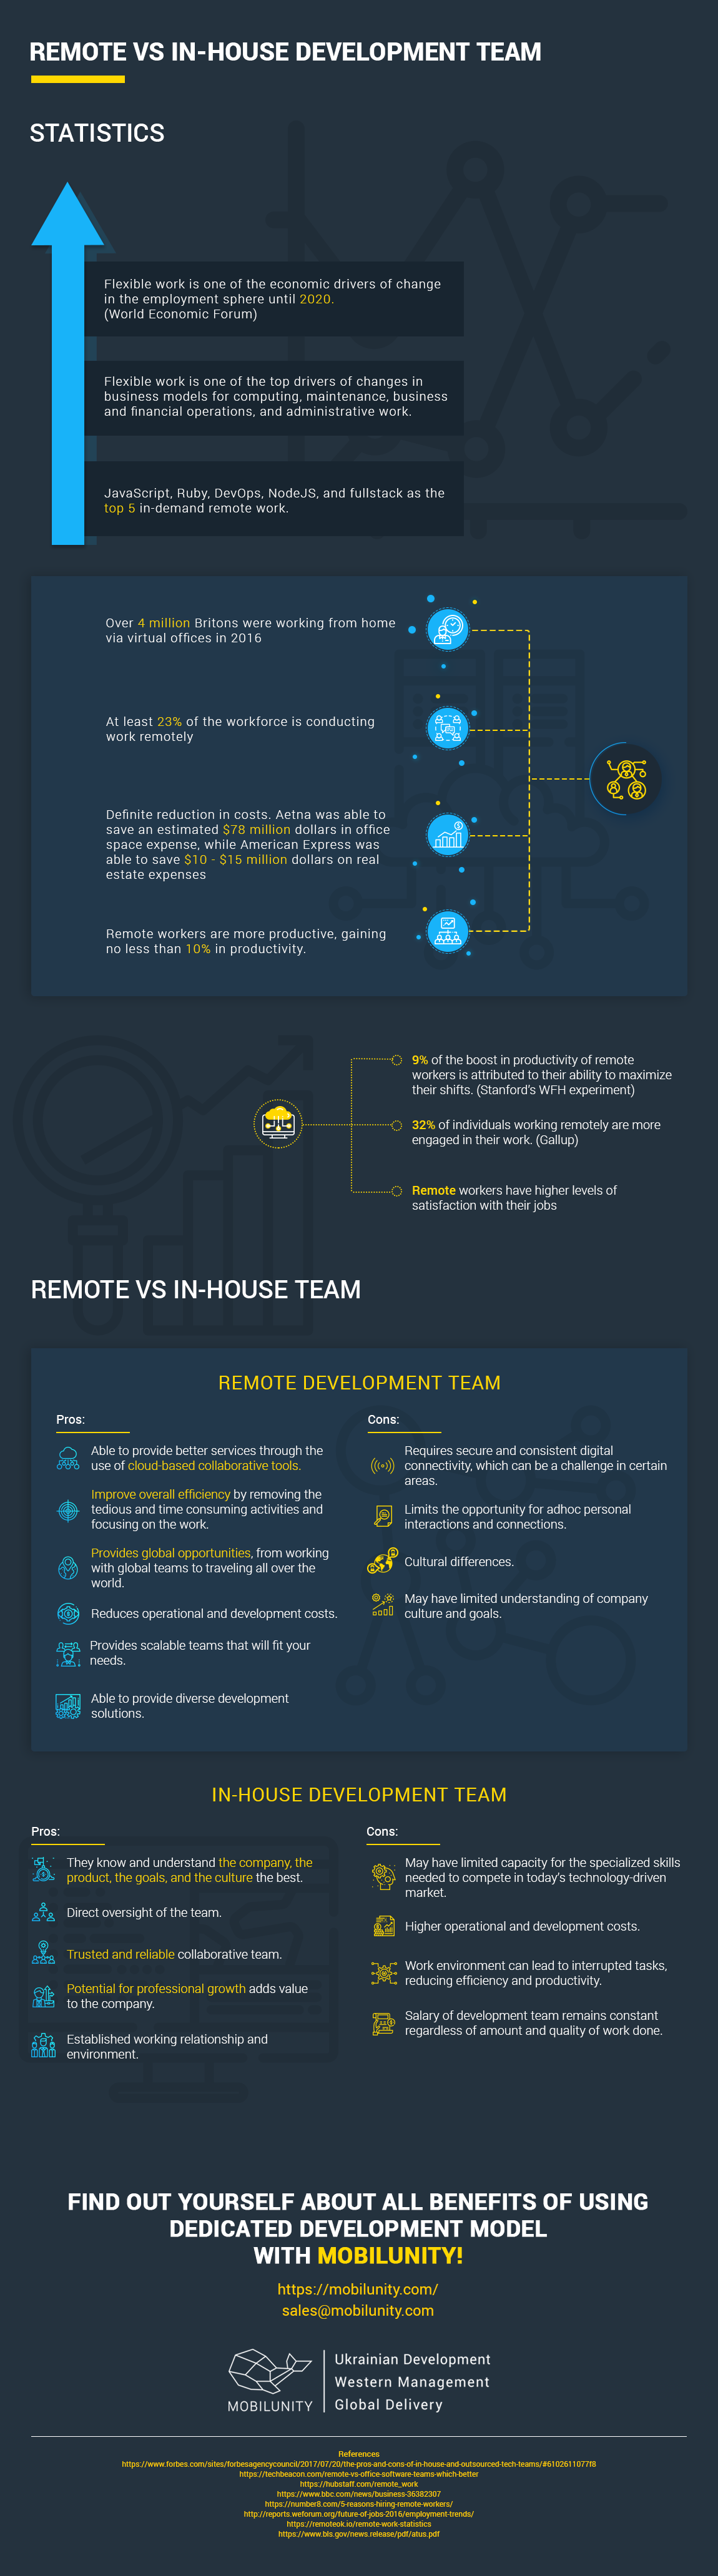 Remote vs In-House Development Teams